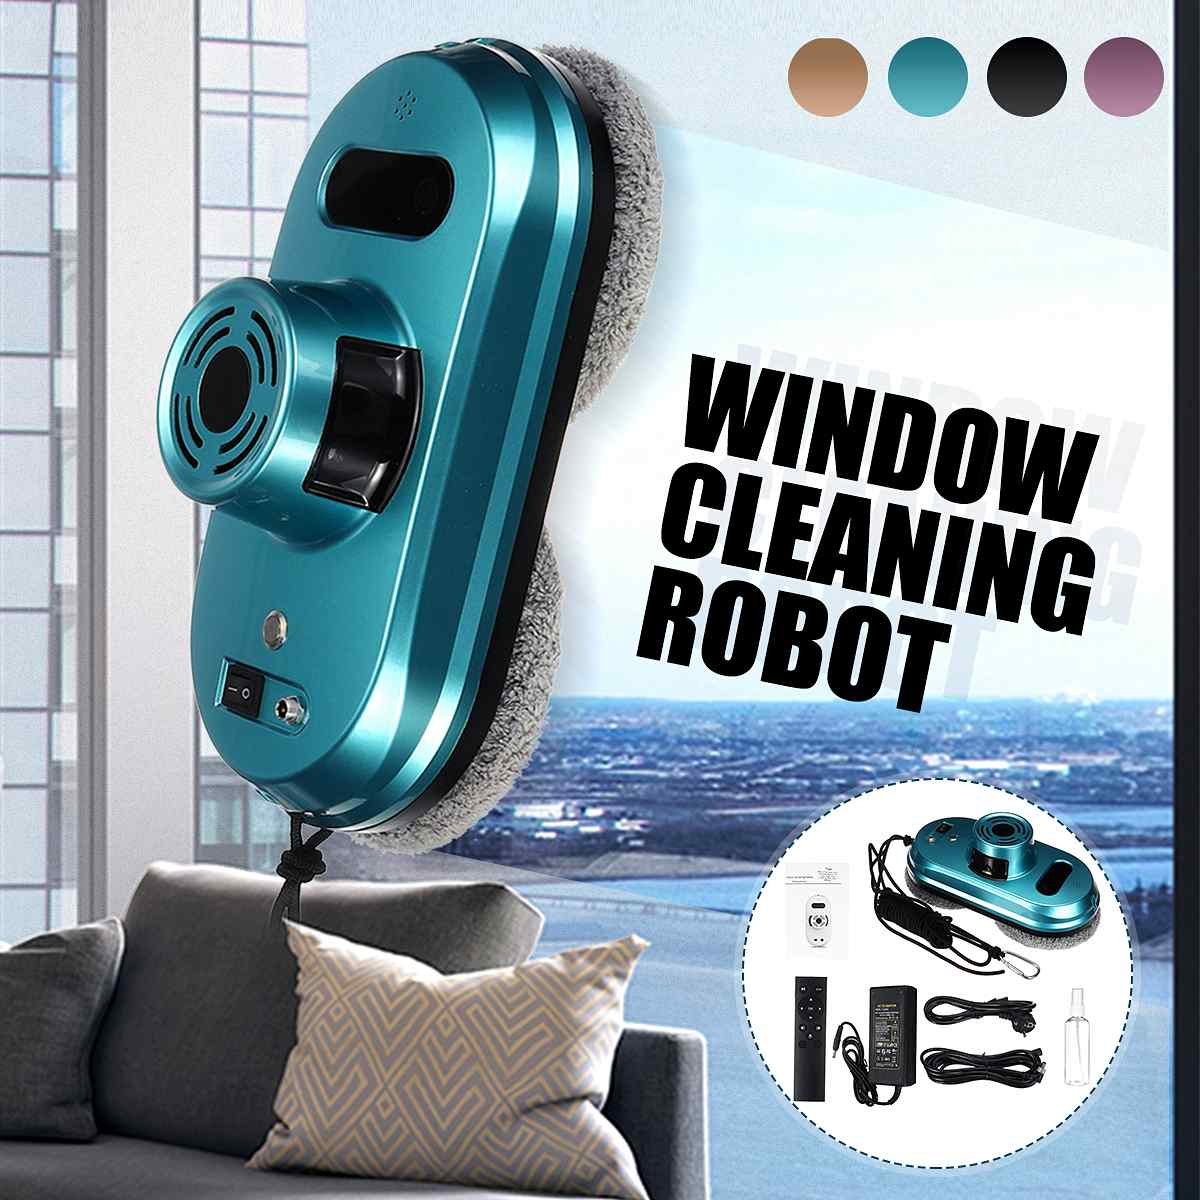 Window Cleaning Robot Window Robot Vacuum Cleaner Remote Control Magnetic Glass Cleaning Robot Framed Window Robot Cleaner Tool